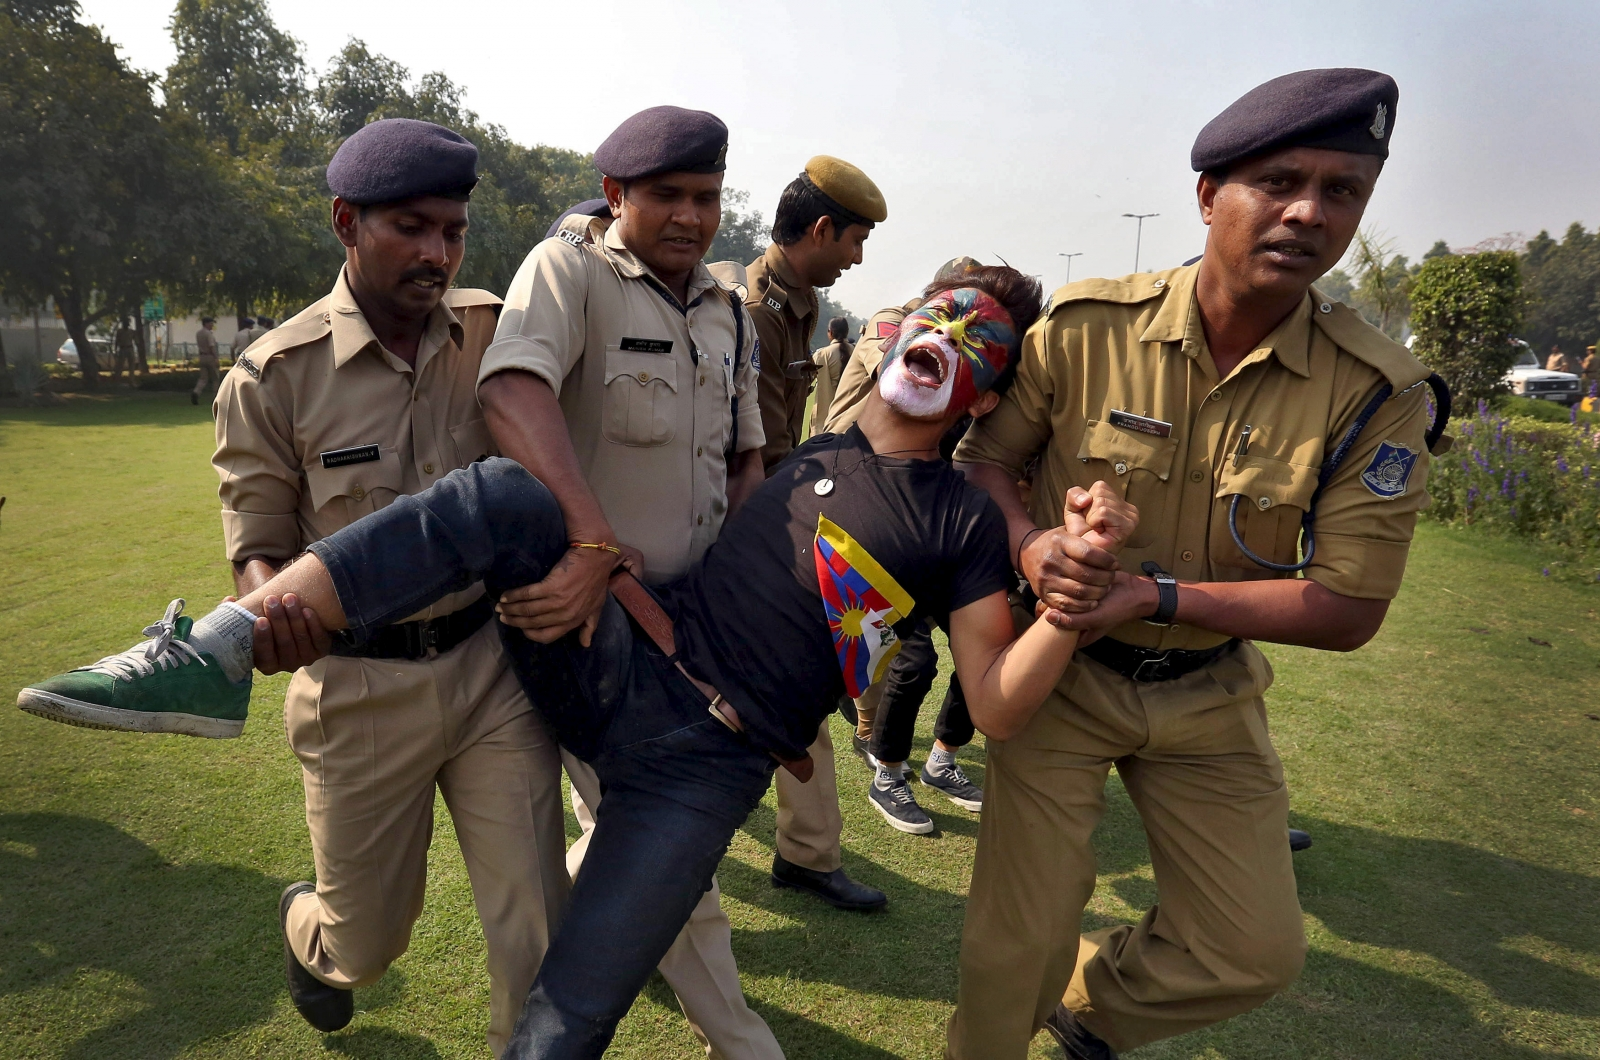 India police toture